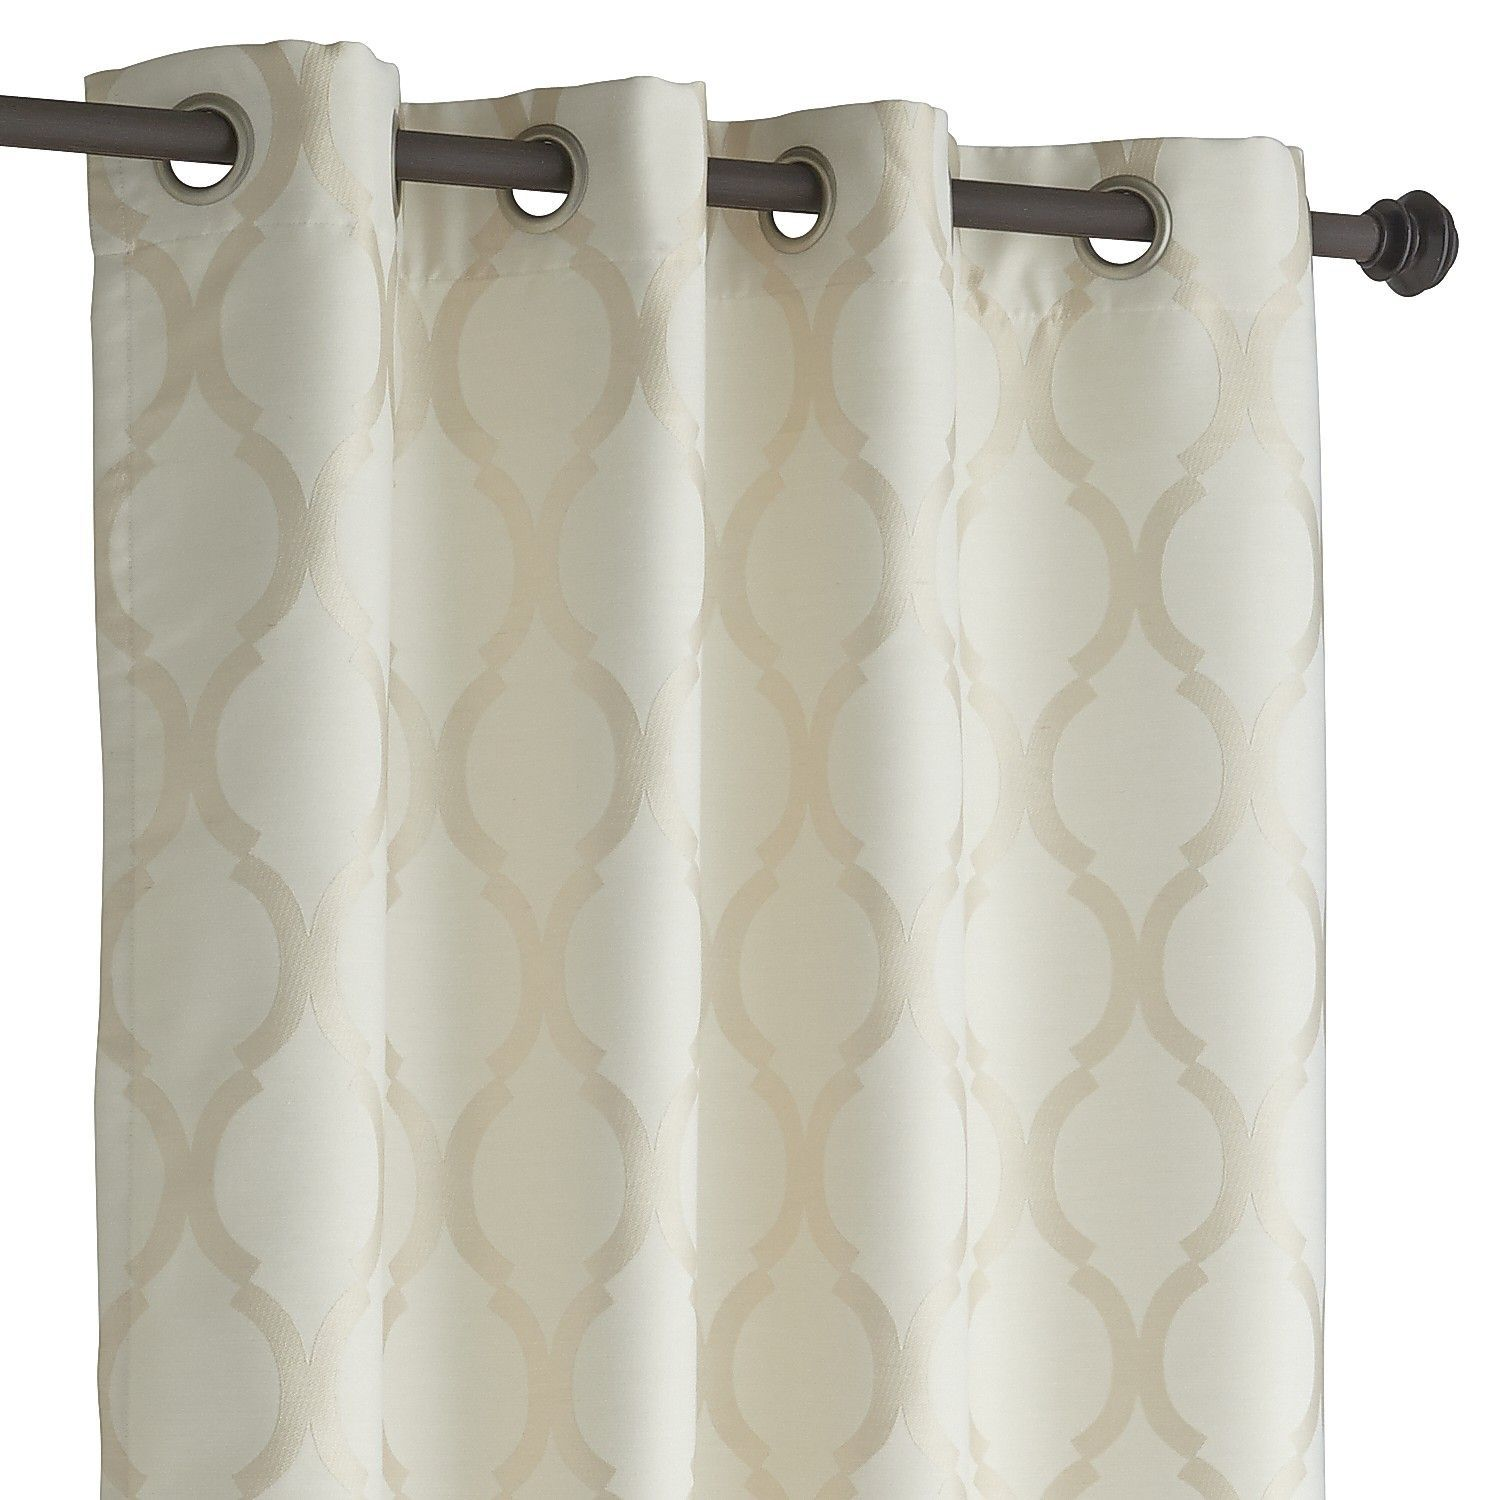 Moorish Tile Ivory Grommet Curtain | Moorish, Room and Living rooms